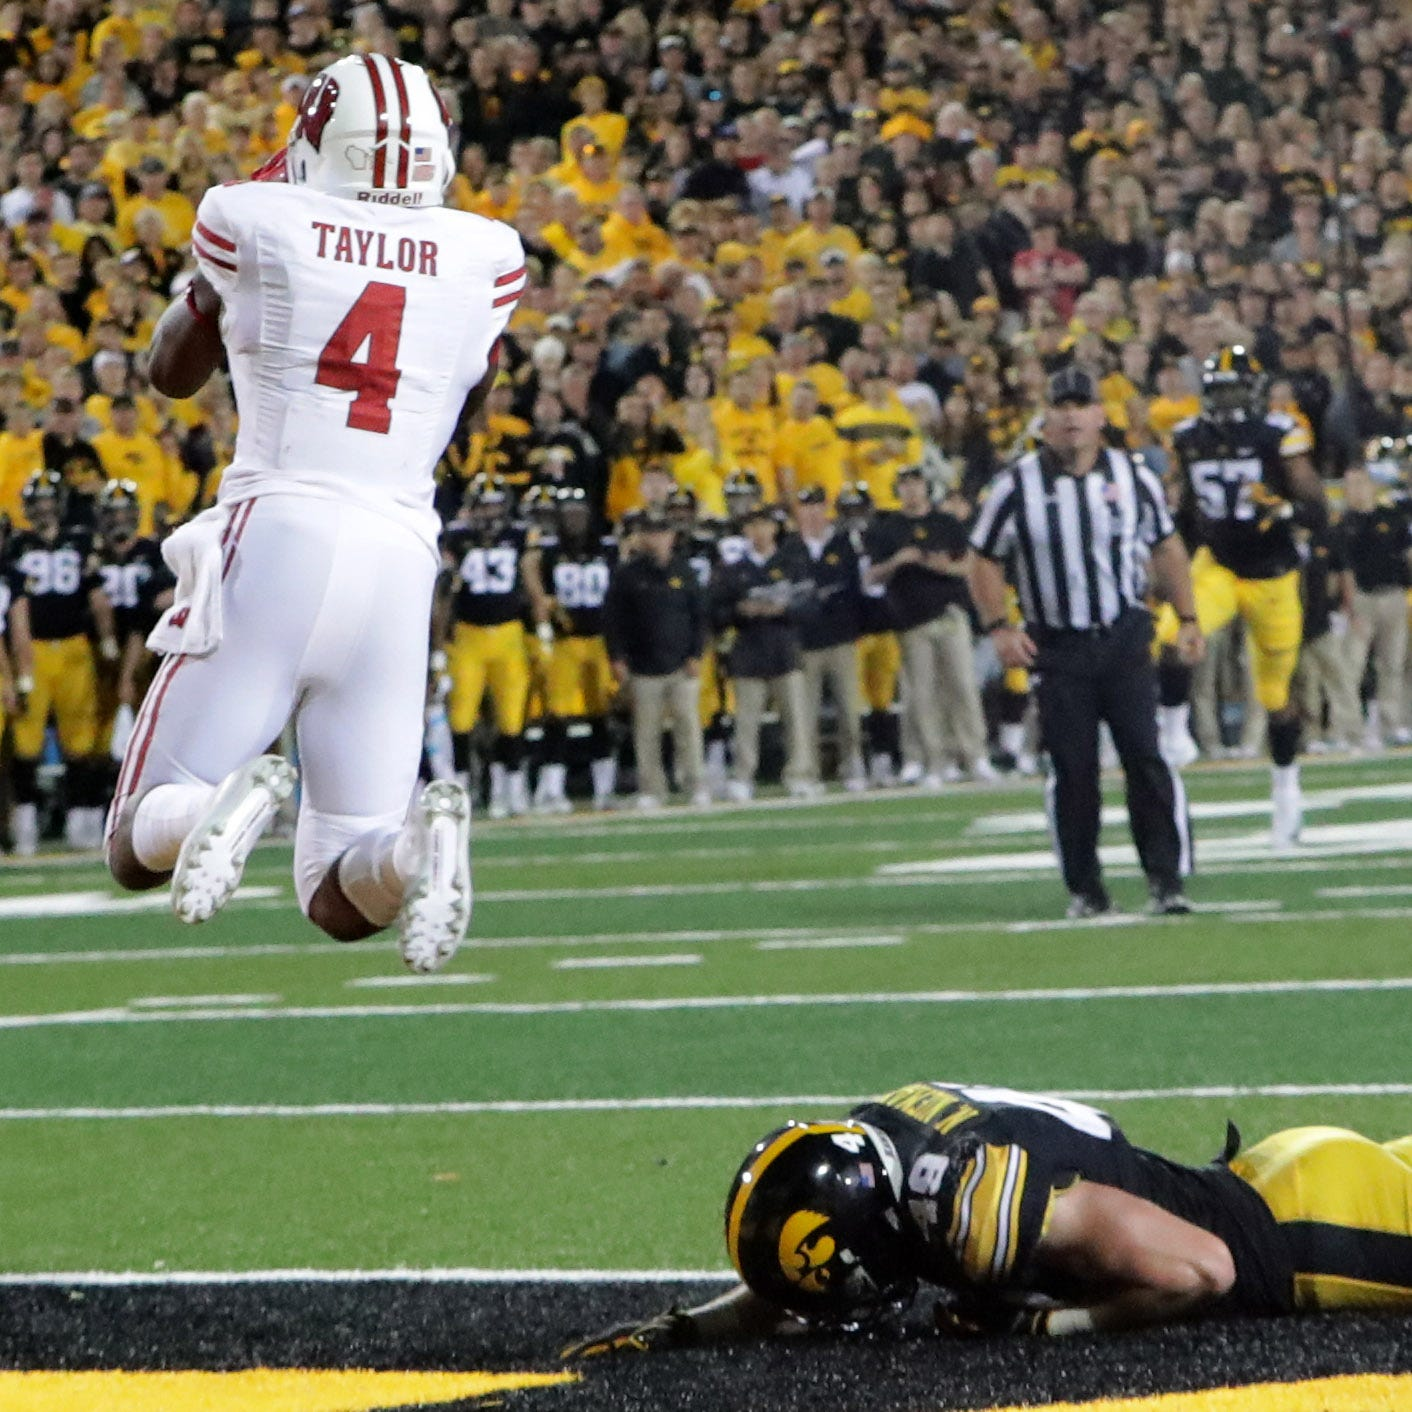 UW used mix of personnel groupings, execution to drive for the winning TD at Iowa